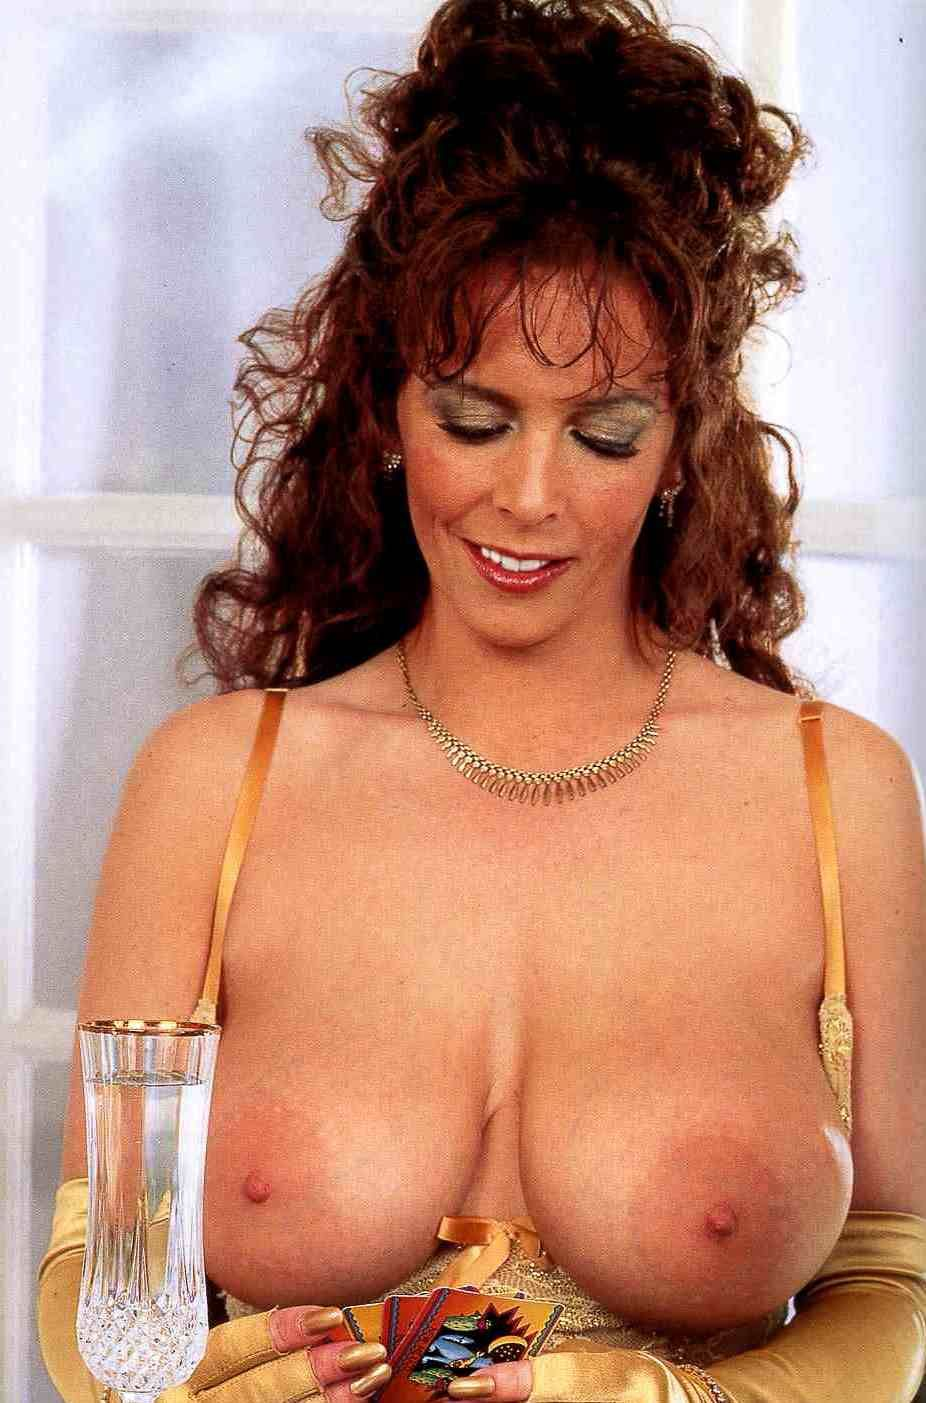 [Busty Amateurs] unknown MILF playing cards